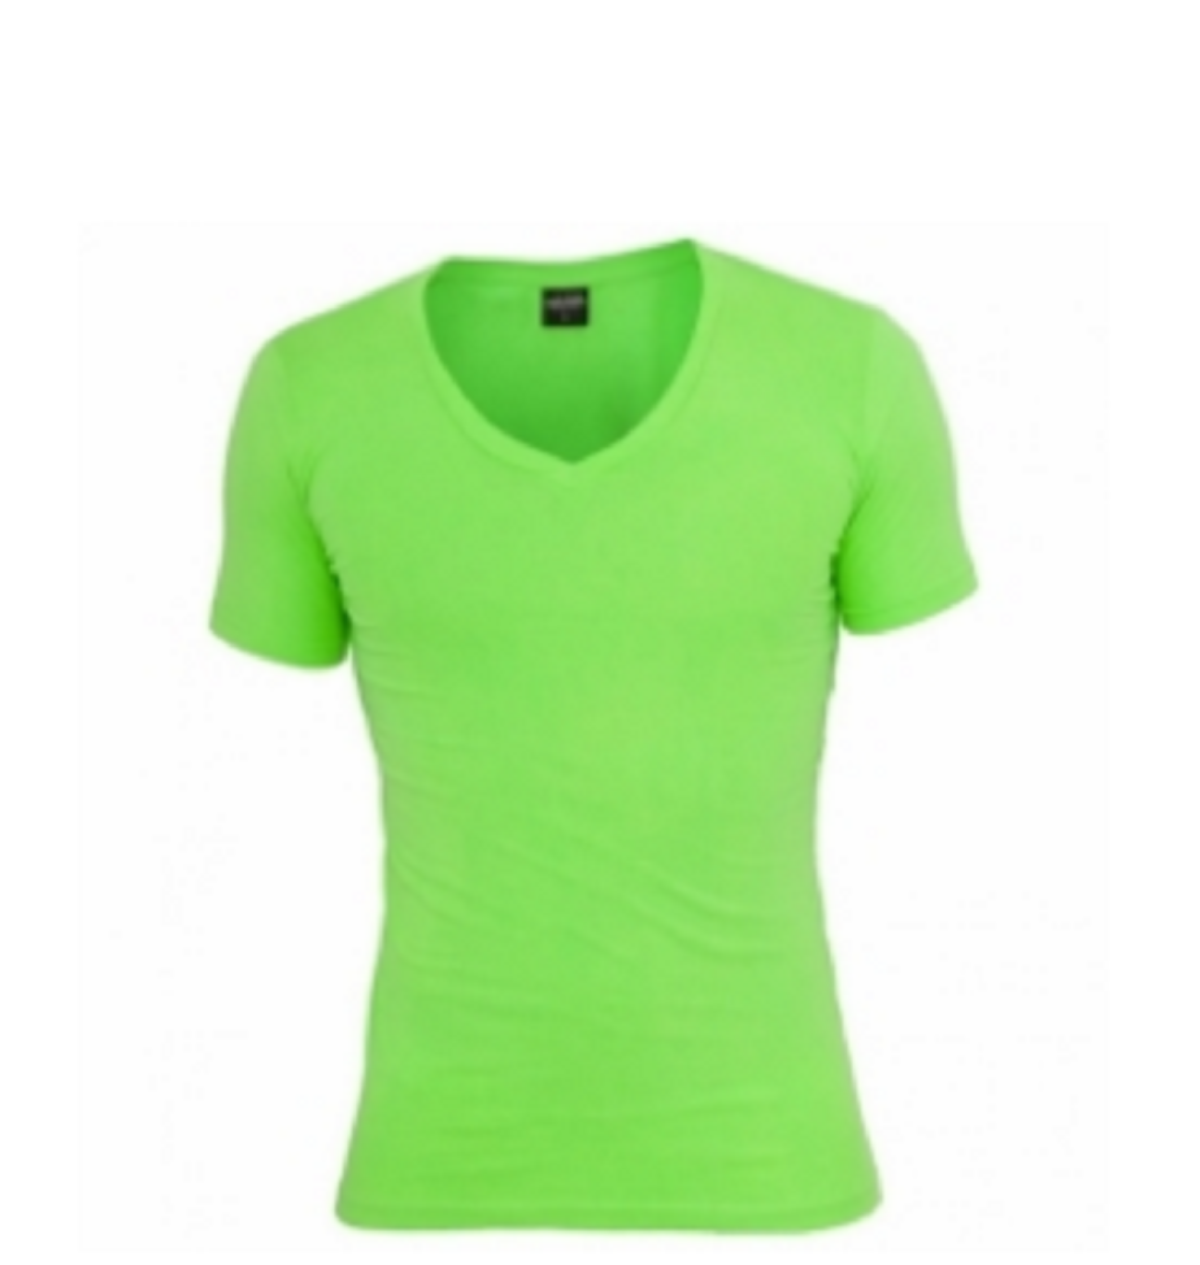 Men's T-Shirts  Green Color Model No TSI­4805